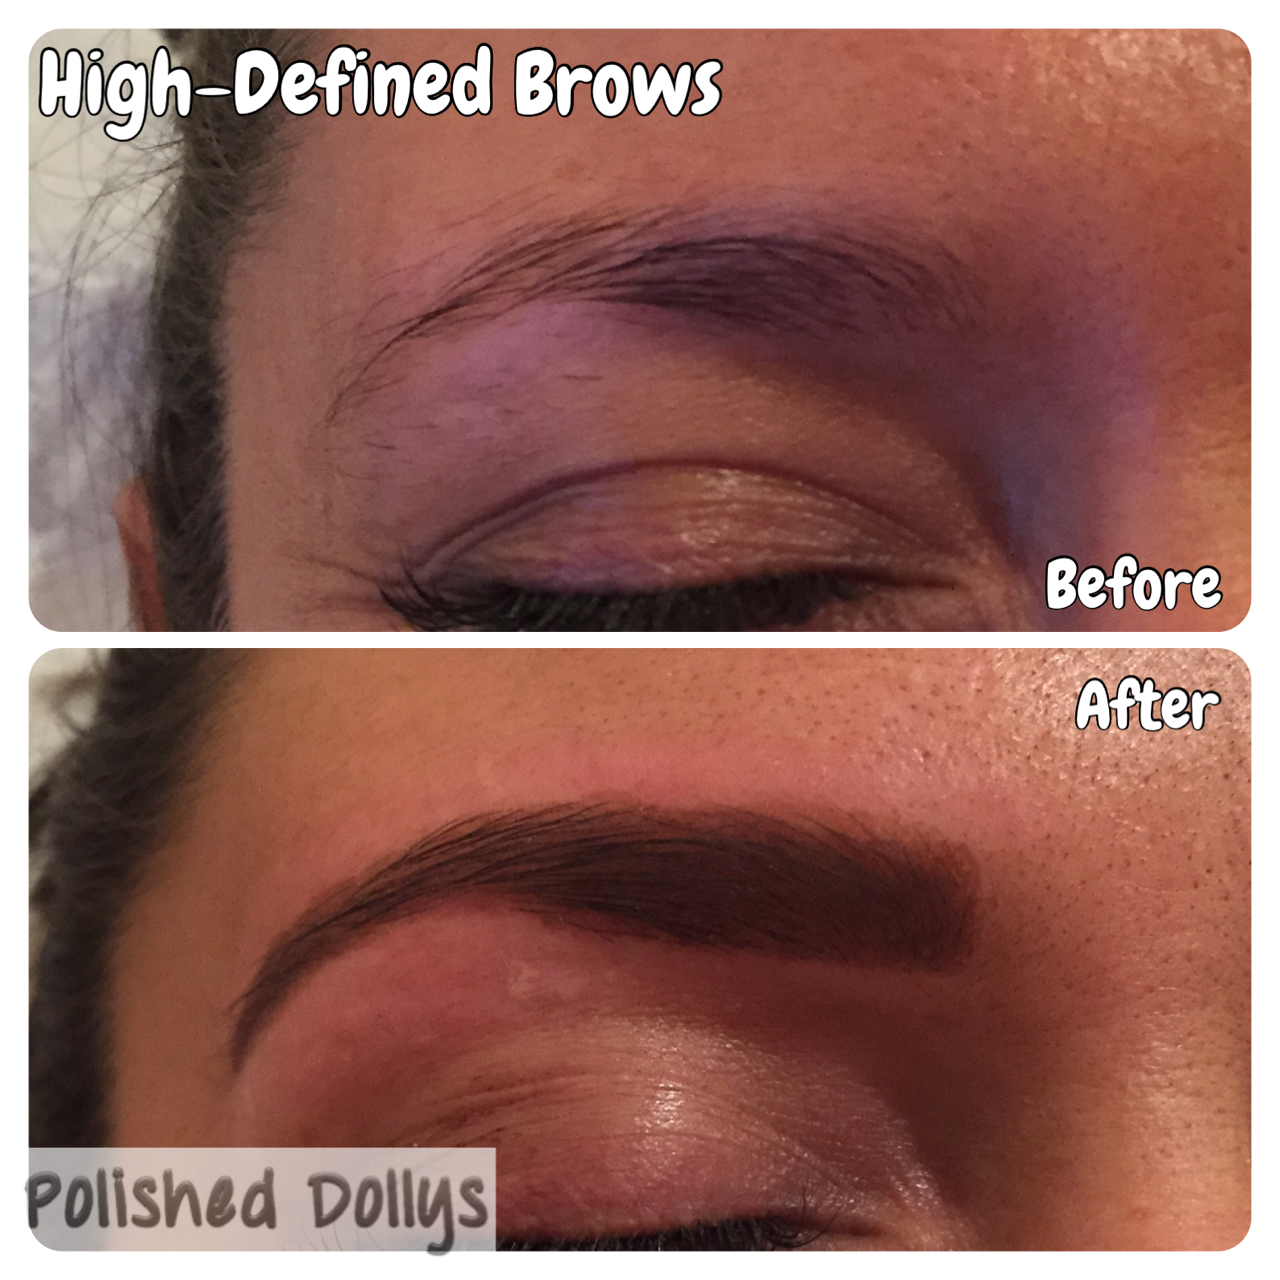 High-Defined Brows